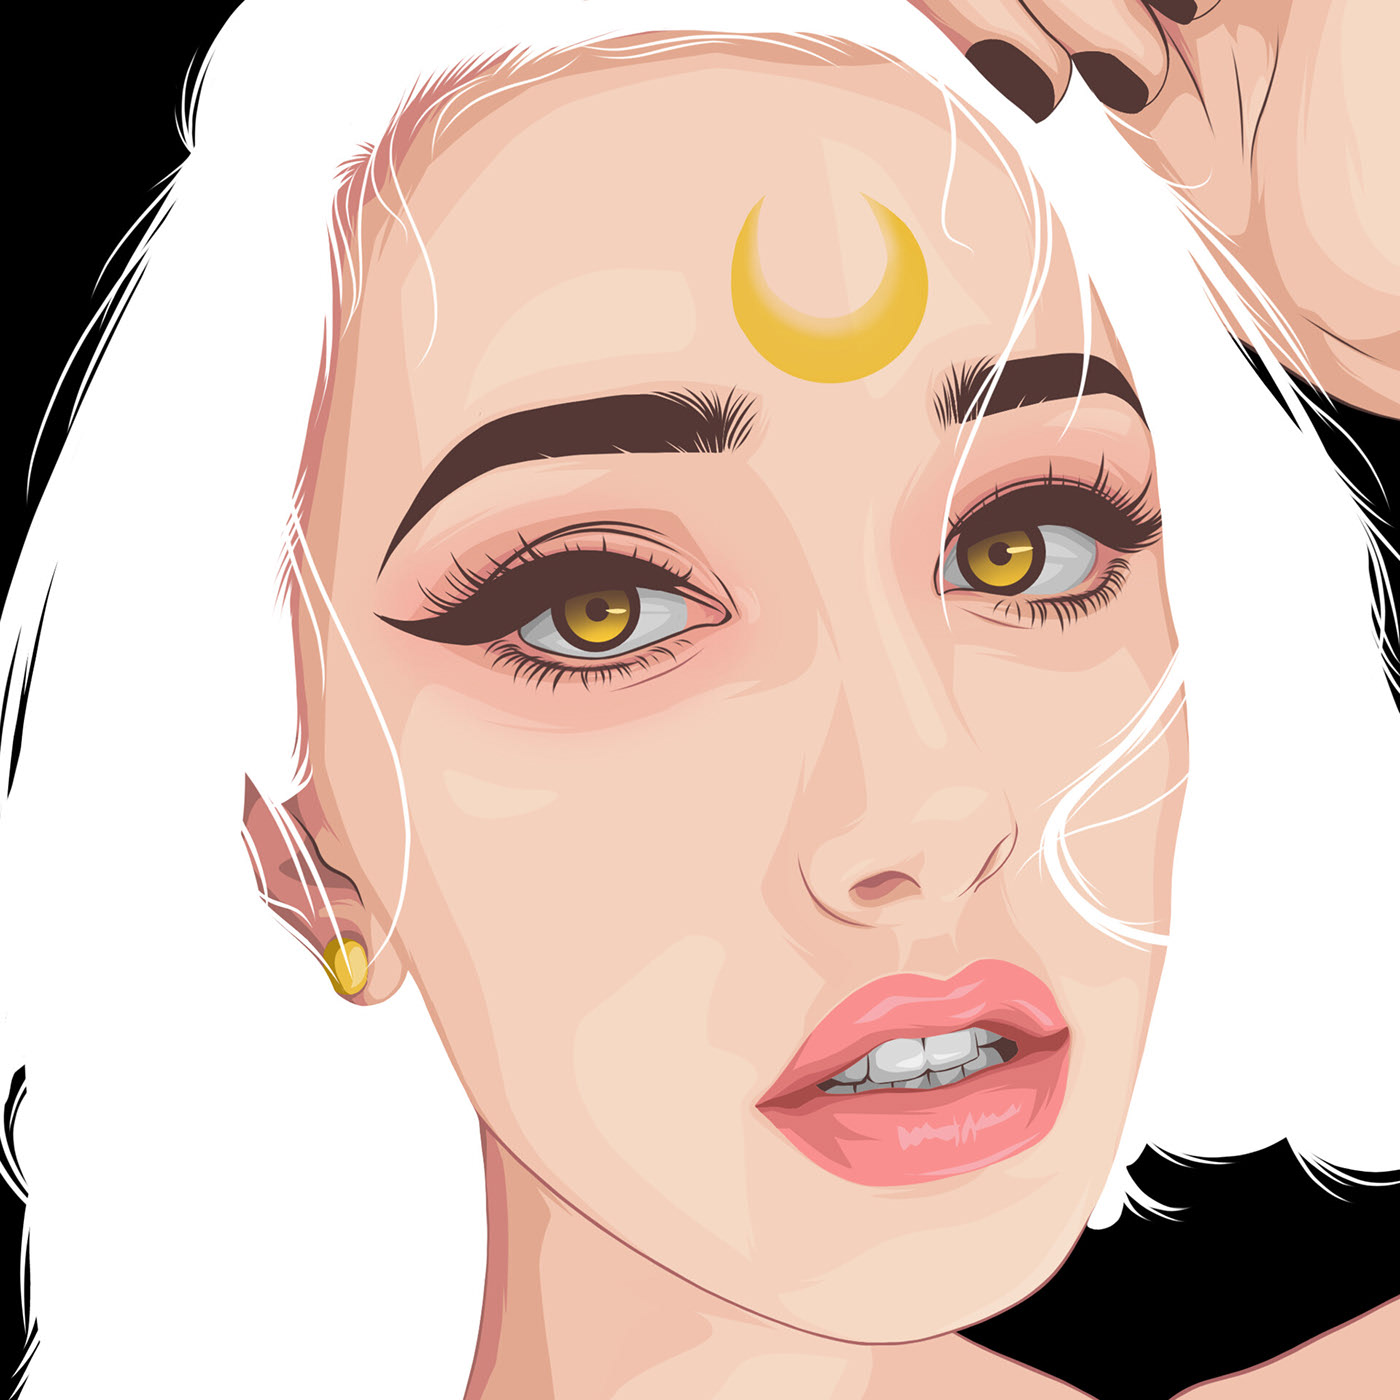 vexel art portrait vector illustration moon face lady by orkhan ljrai